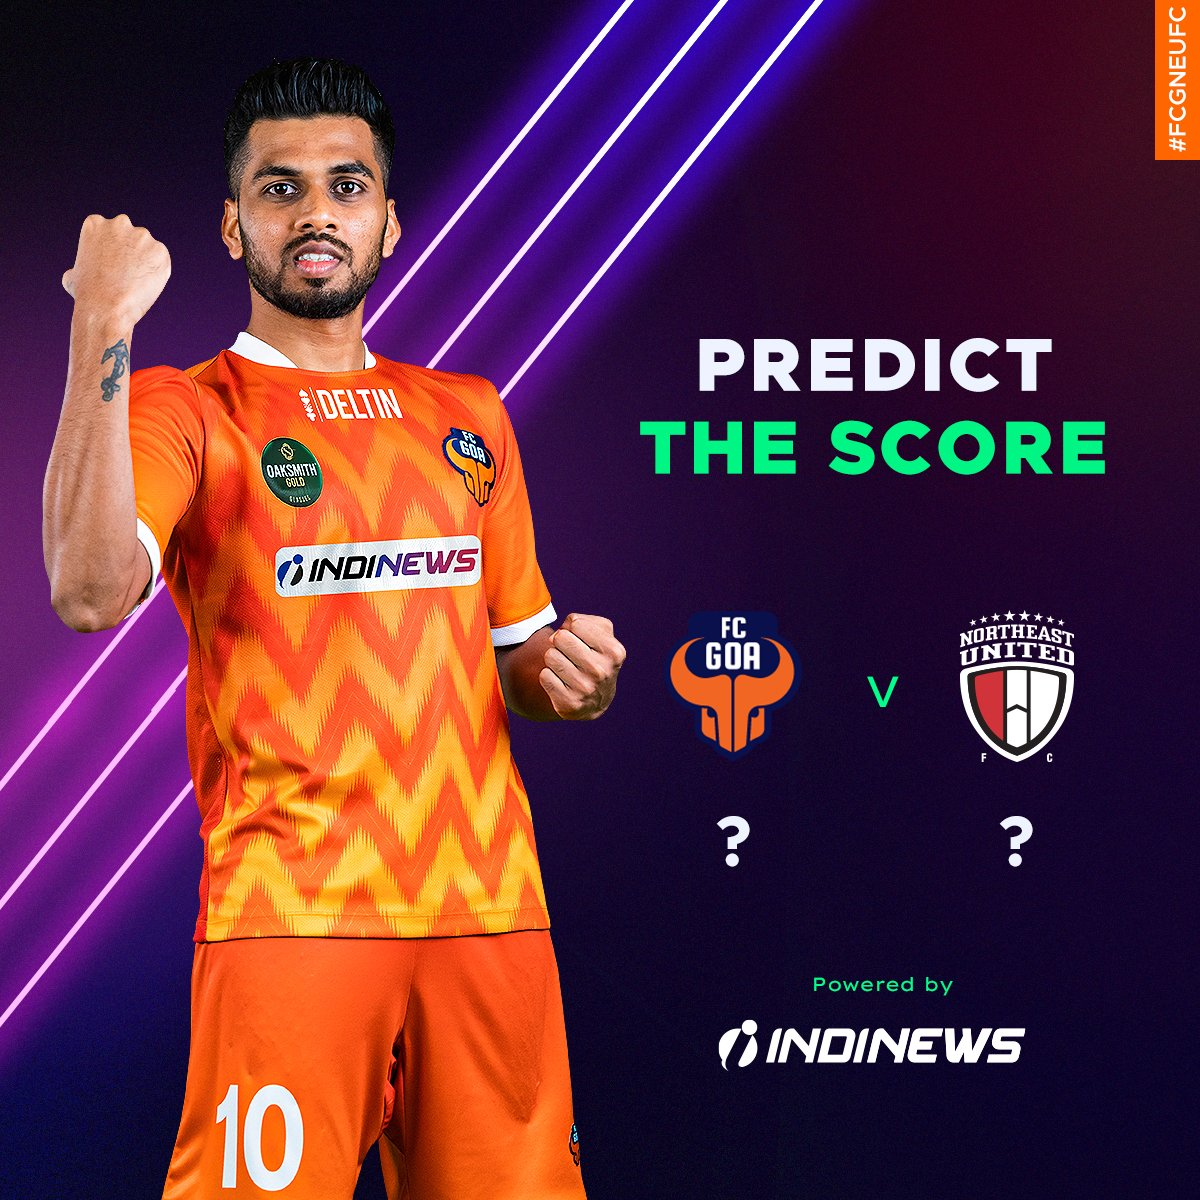 What are your predictions for tomorrow's crucial game? 🤔  Powered by @IndinewsO   #RiseAgain #FCGNEUFC